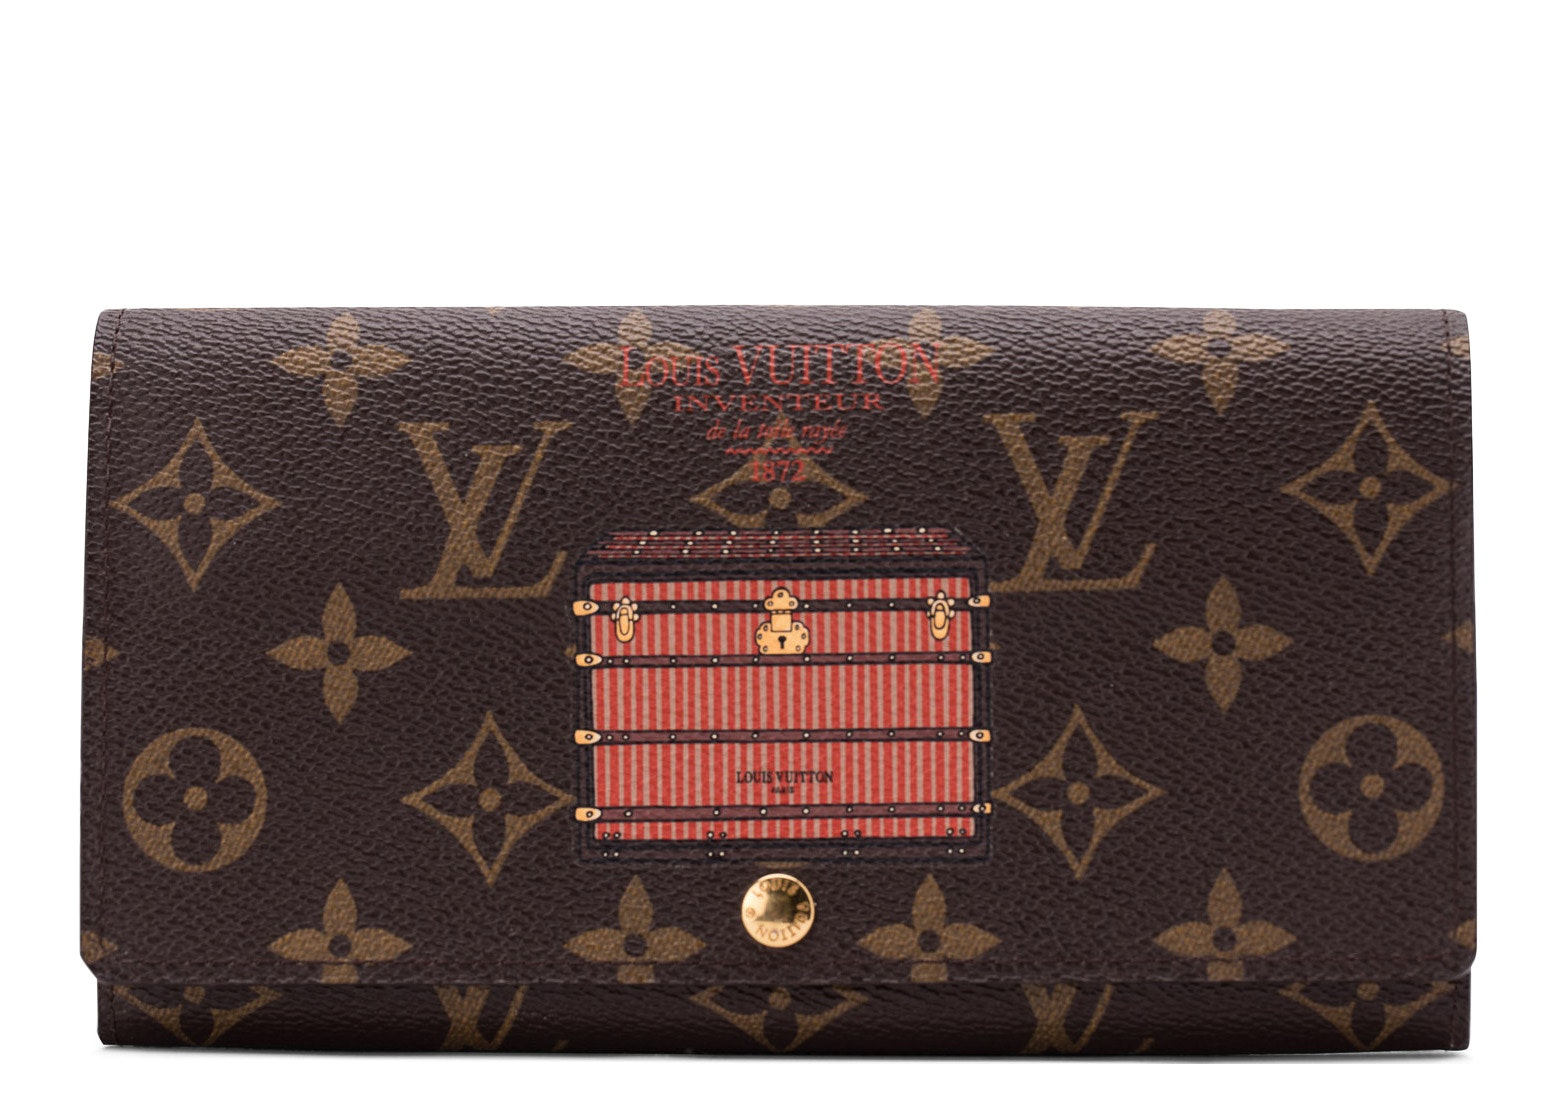 Louis Vuitton Sarah Wallet Trunks and Locks Monogram Brown